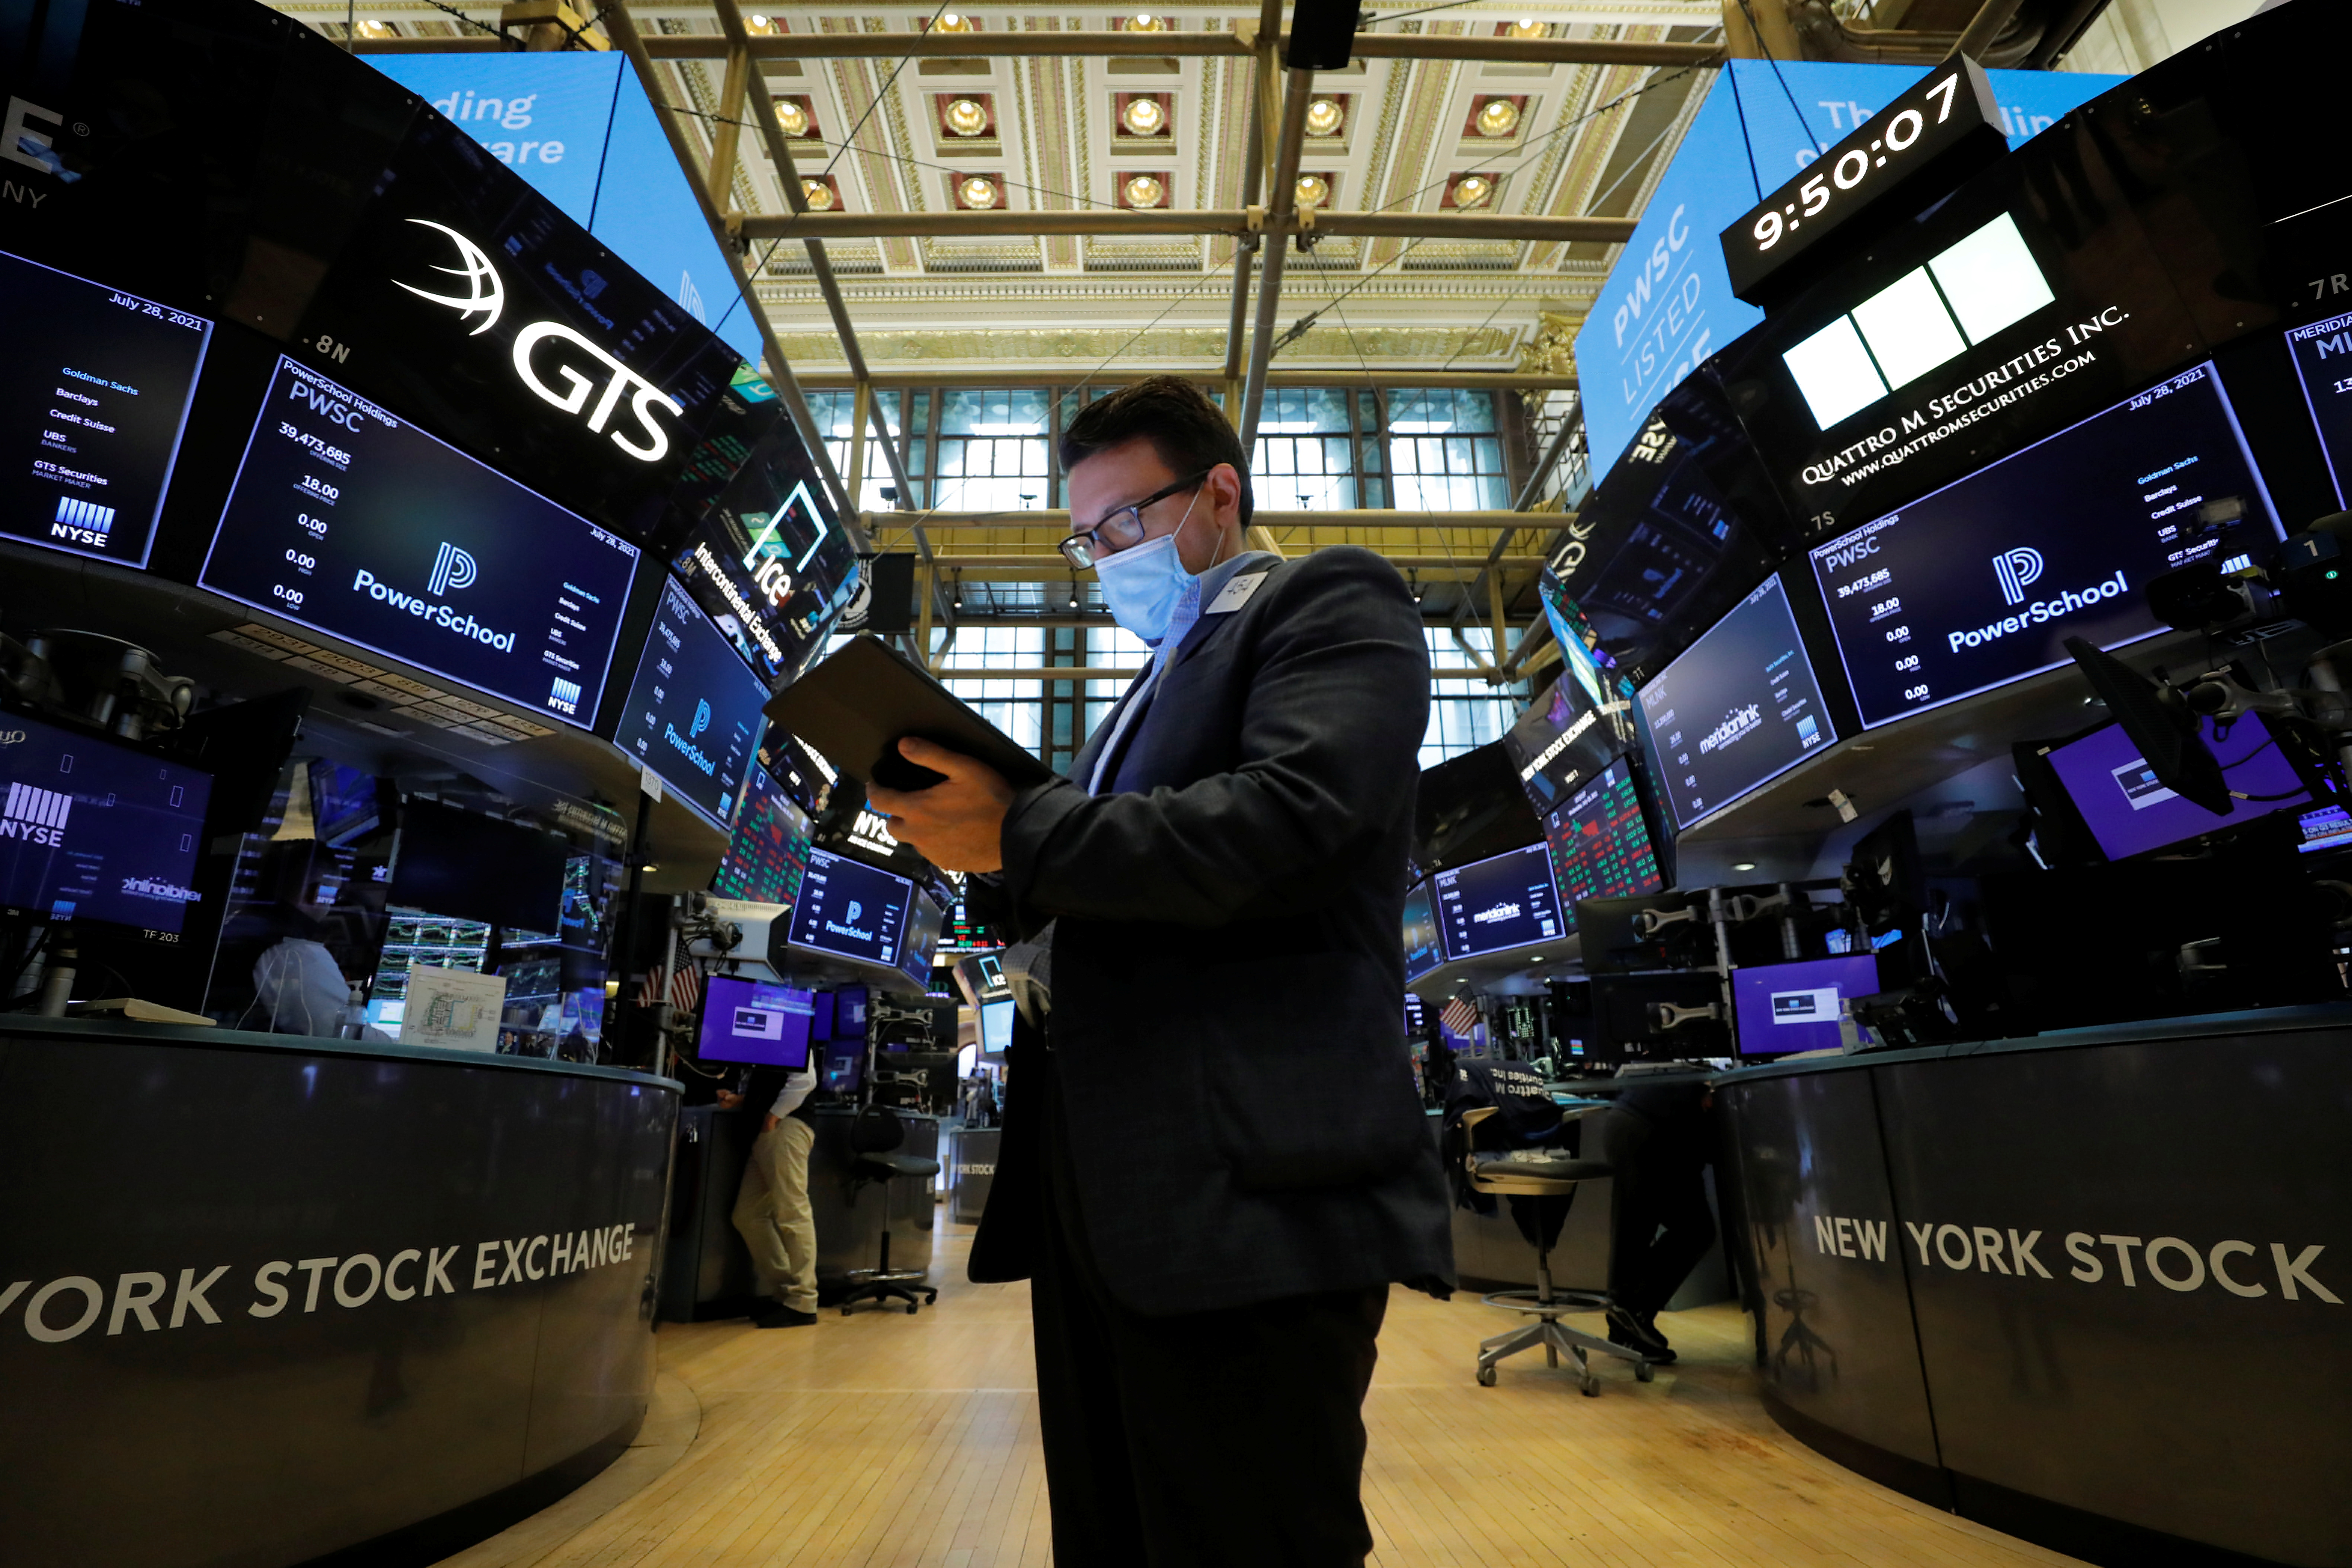 A trader works on the floor of the New York Stock Exchange (NYSE) in New York City, New York, U.S., July 28, 2021. REUTERS/Andrew Kelly